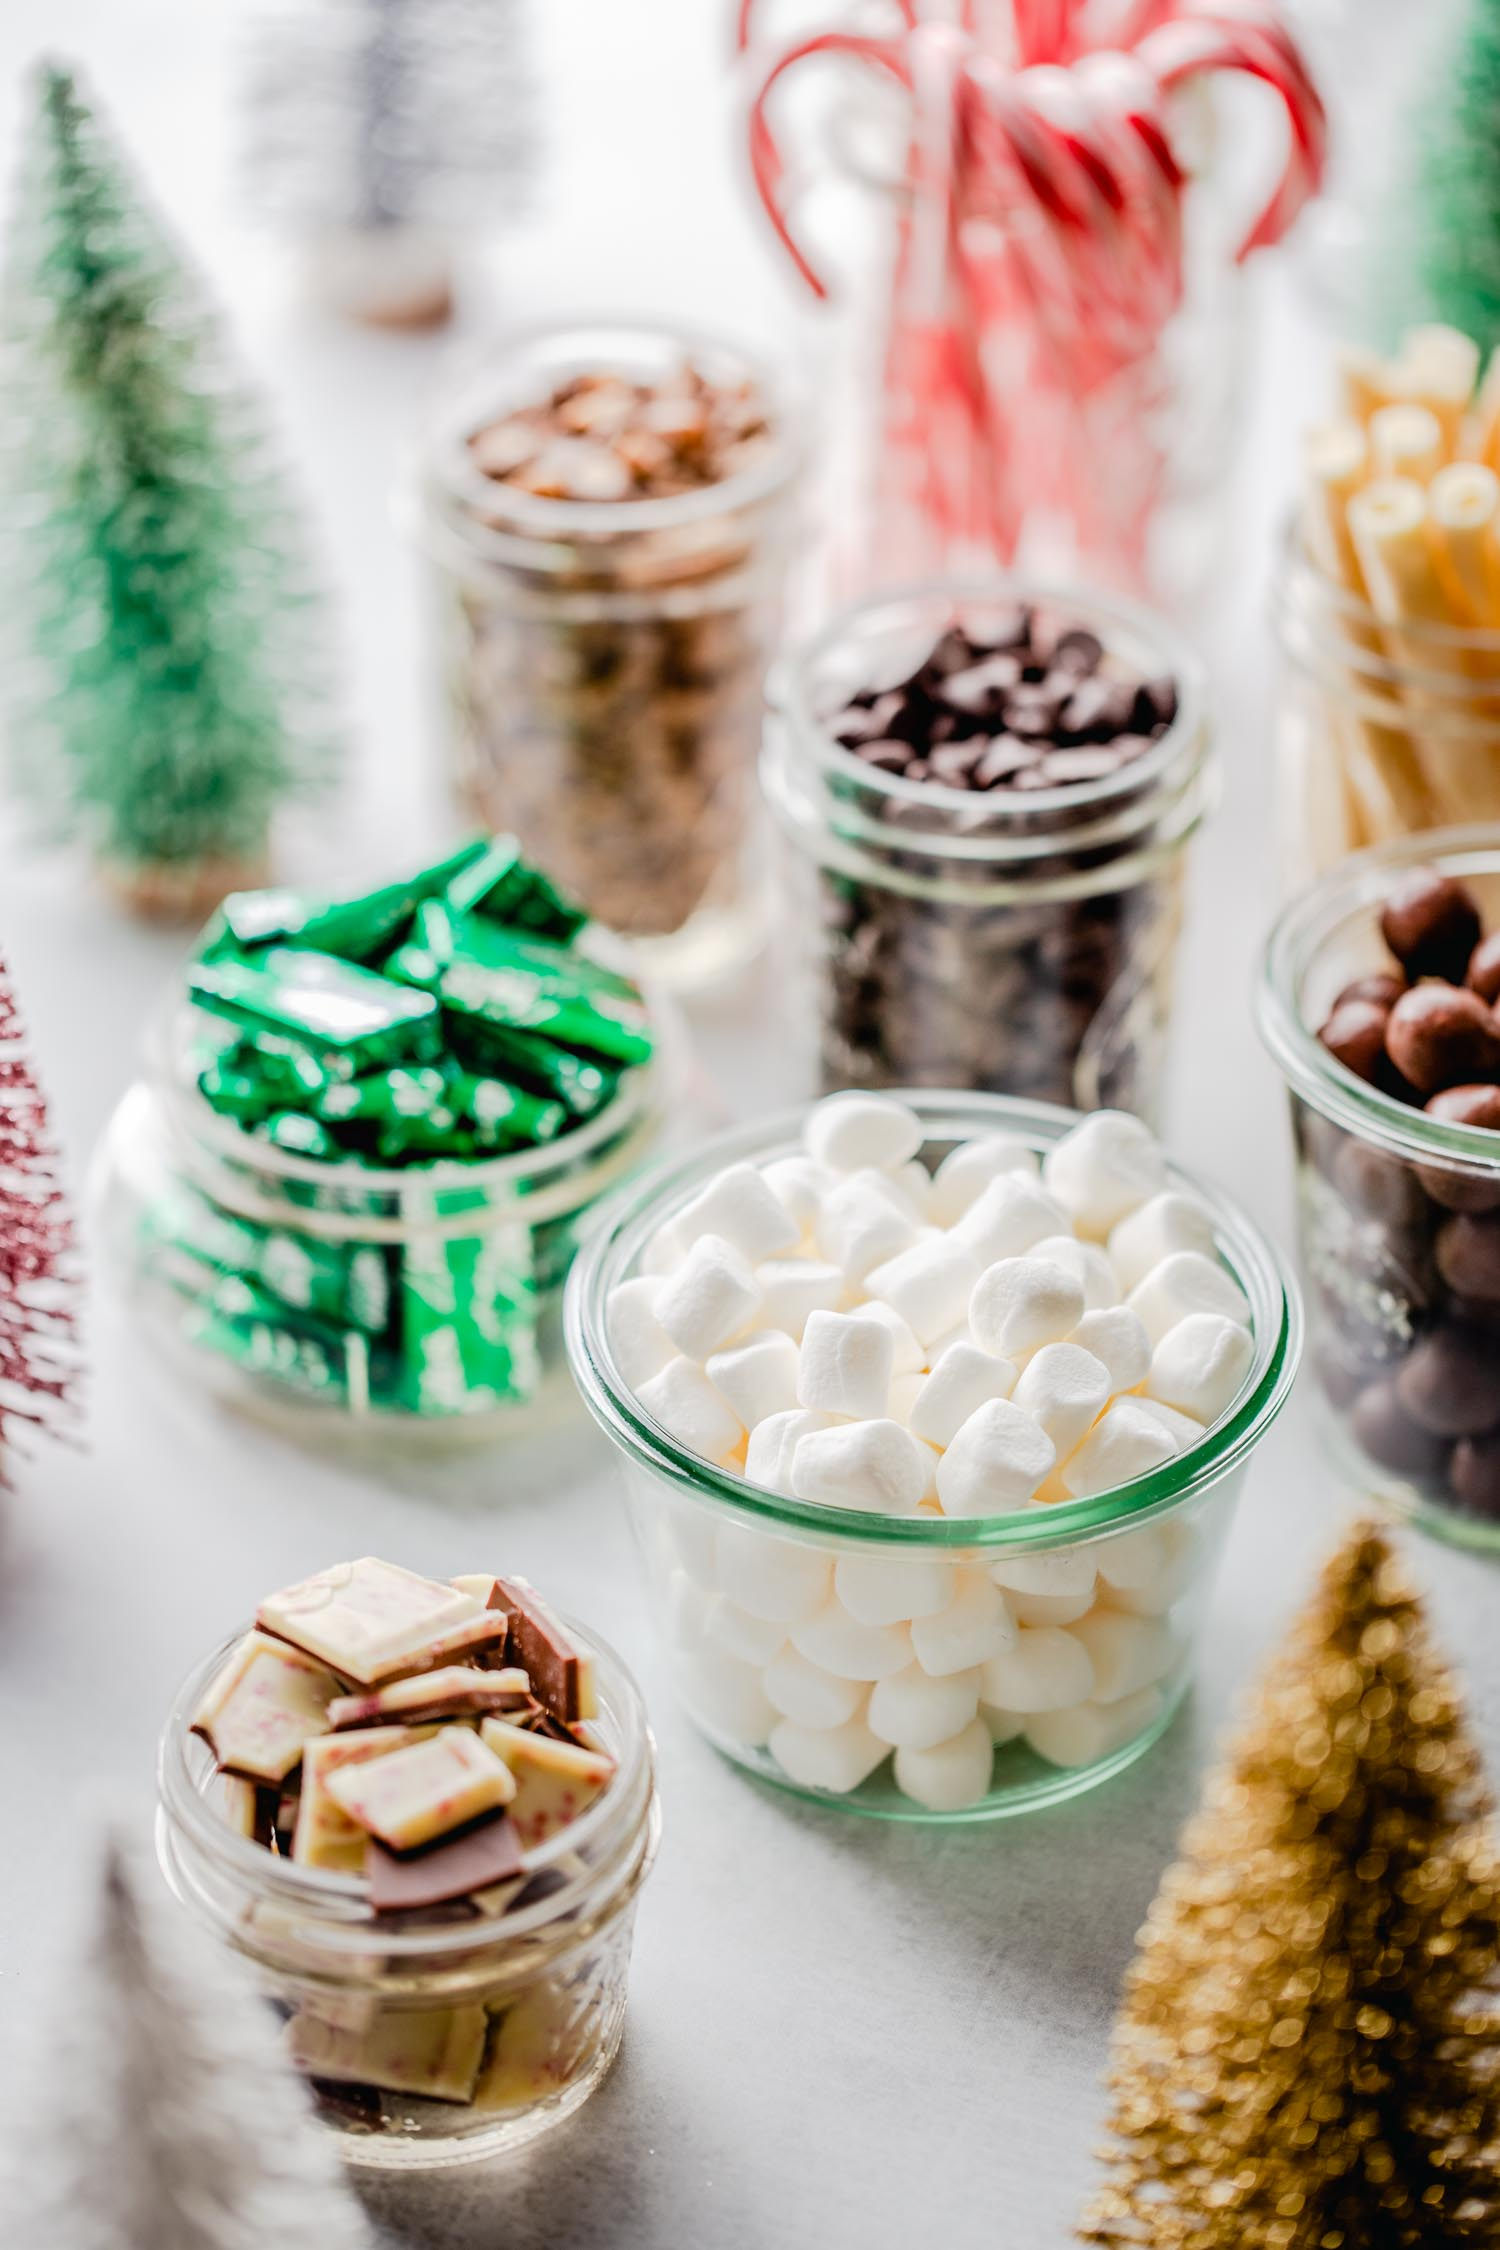 jars with candies for hot chocolate